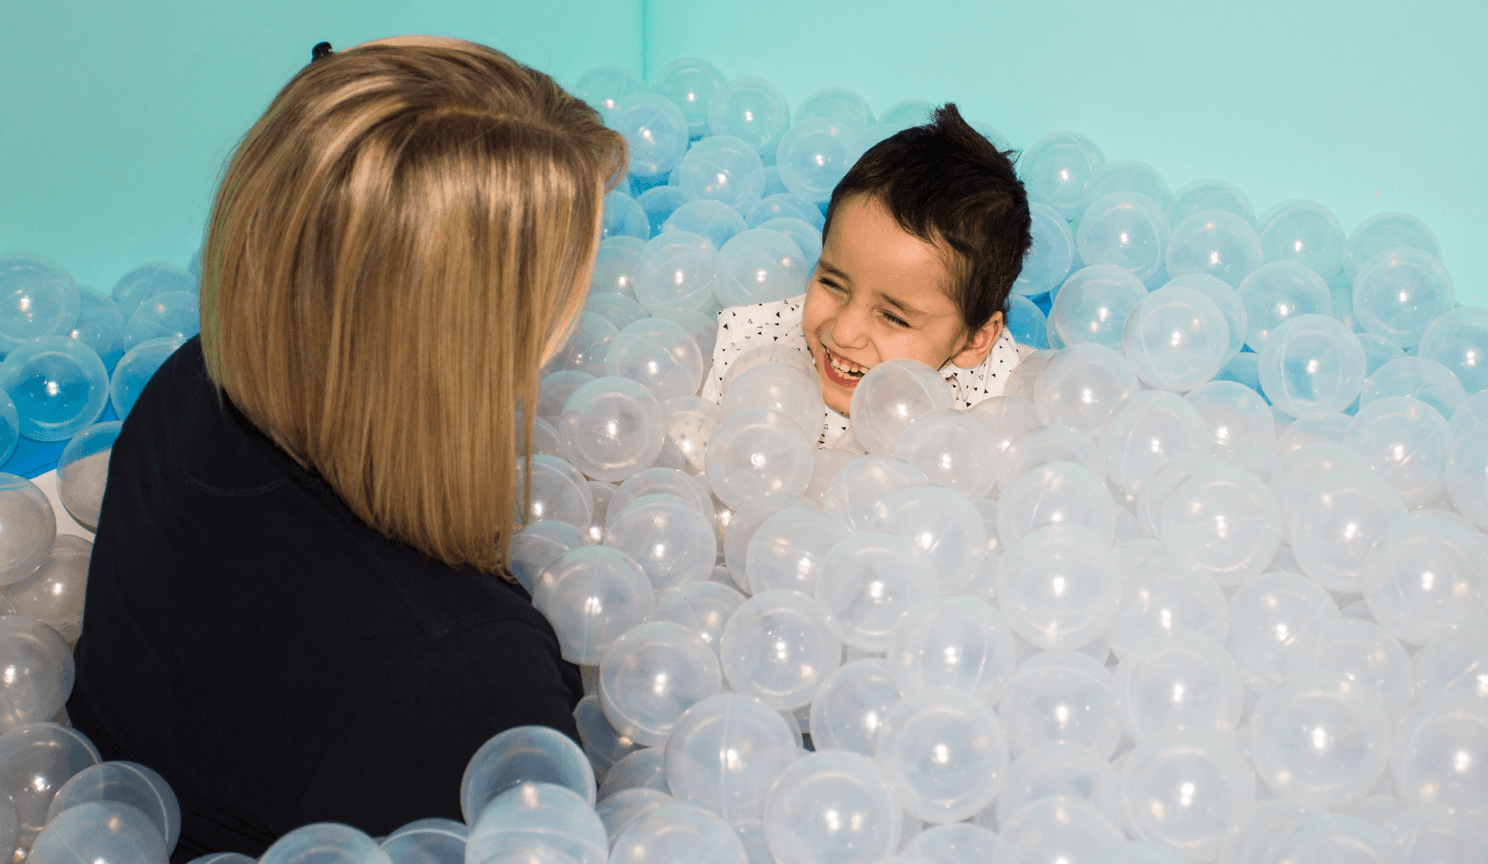 Child plays in ball pit